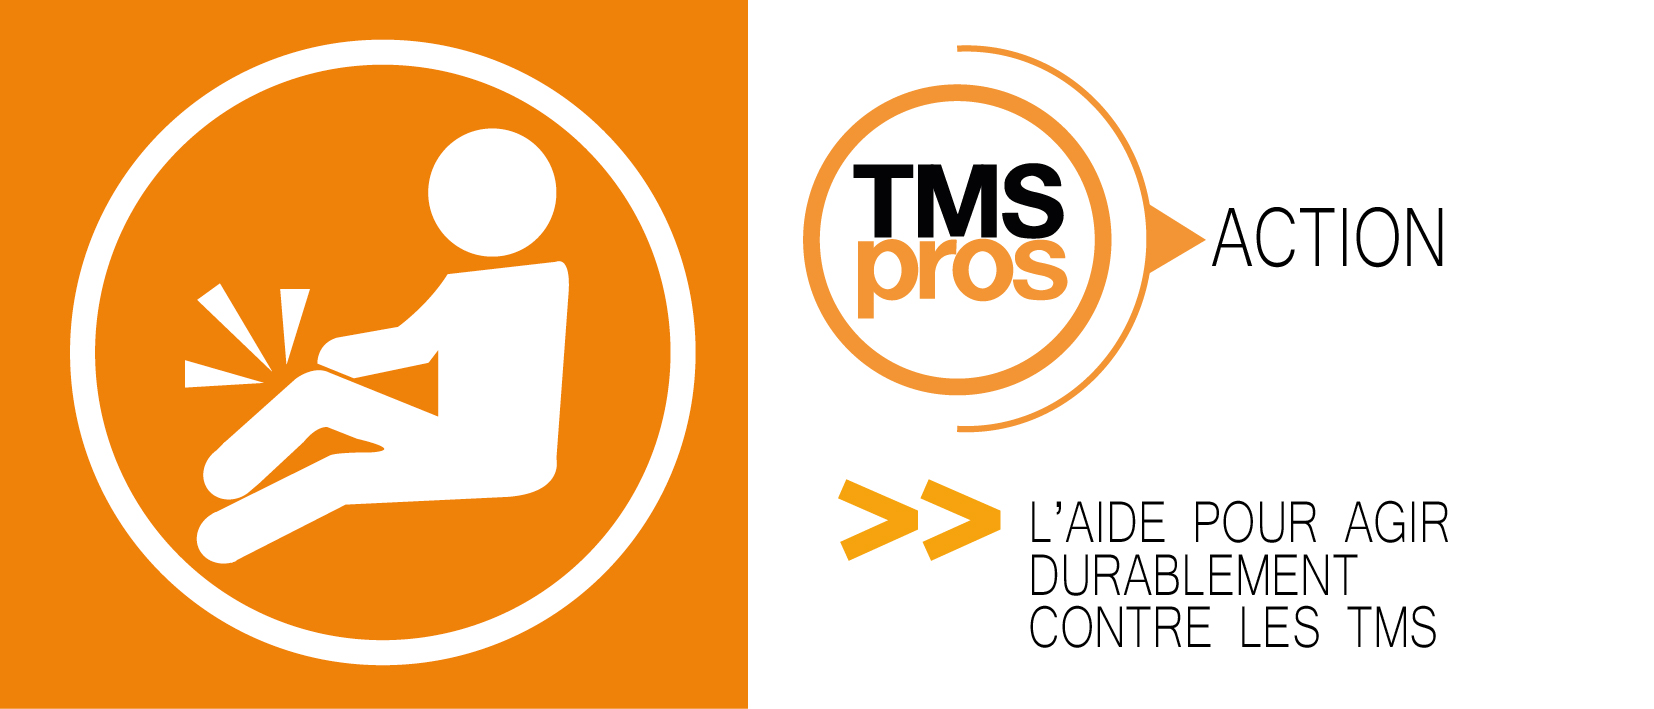 tms action